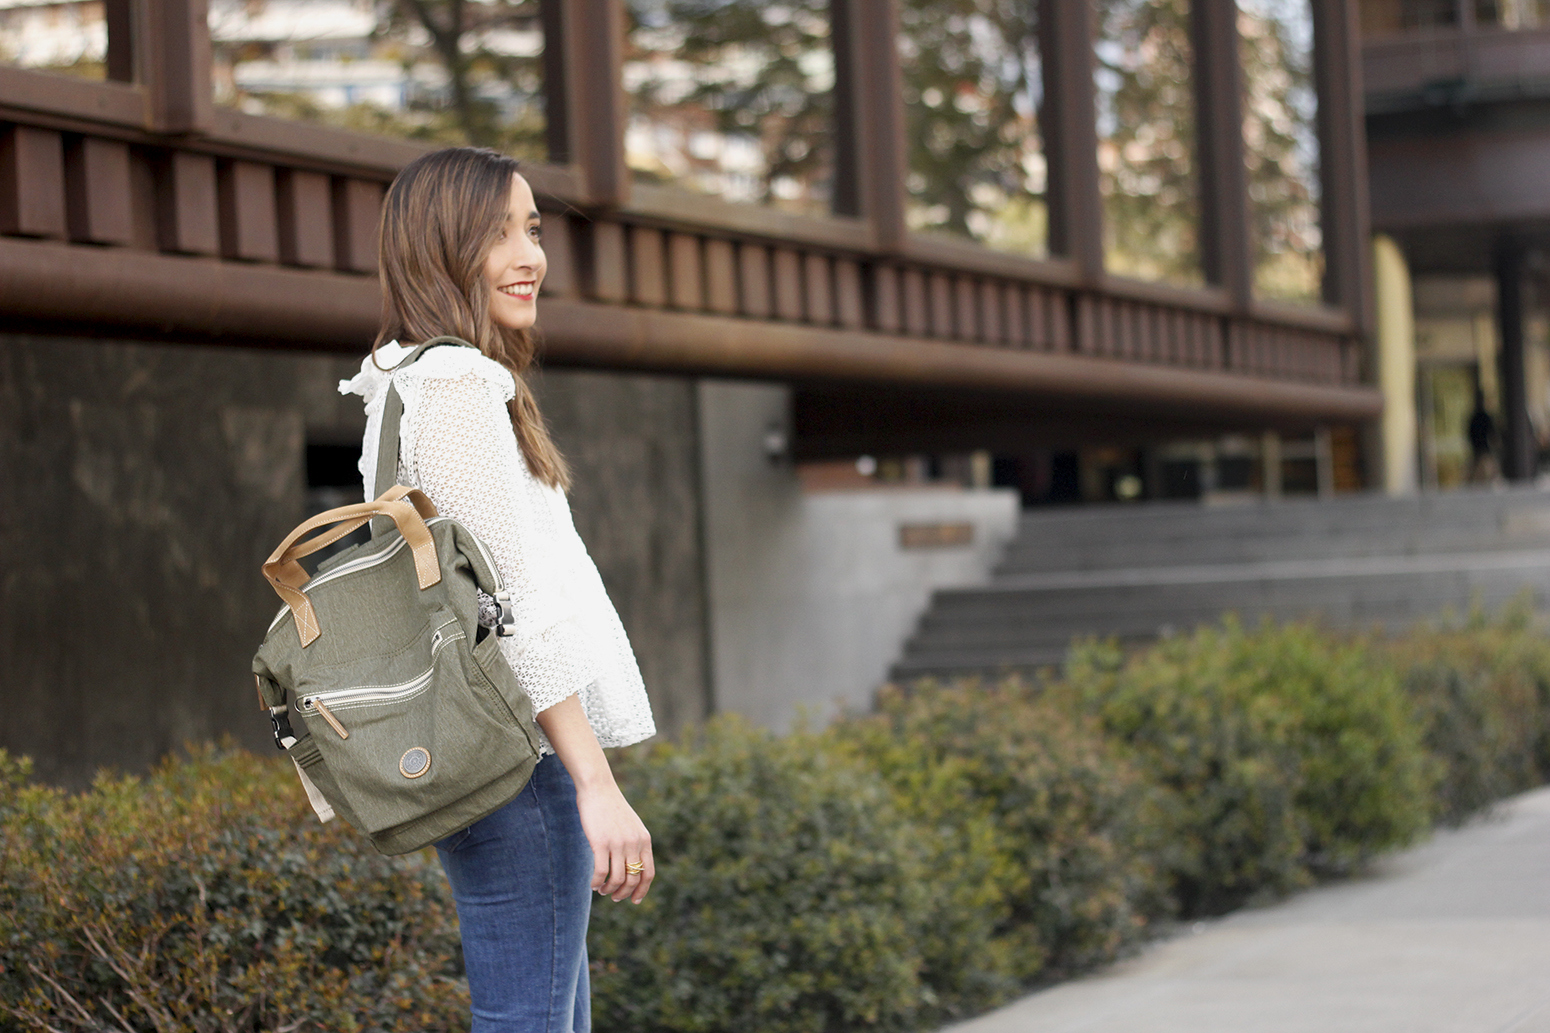 kipling backpack transformation collection khaki white lace blouse casual street style casual outfit 201912